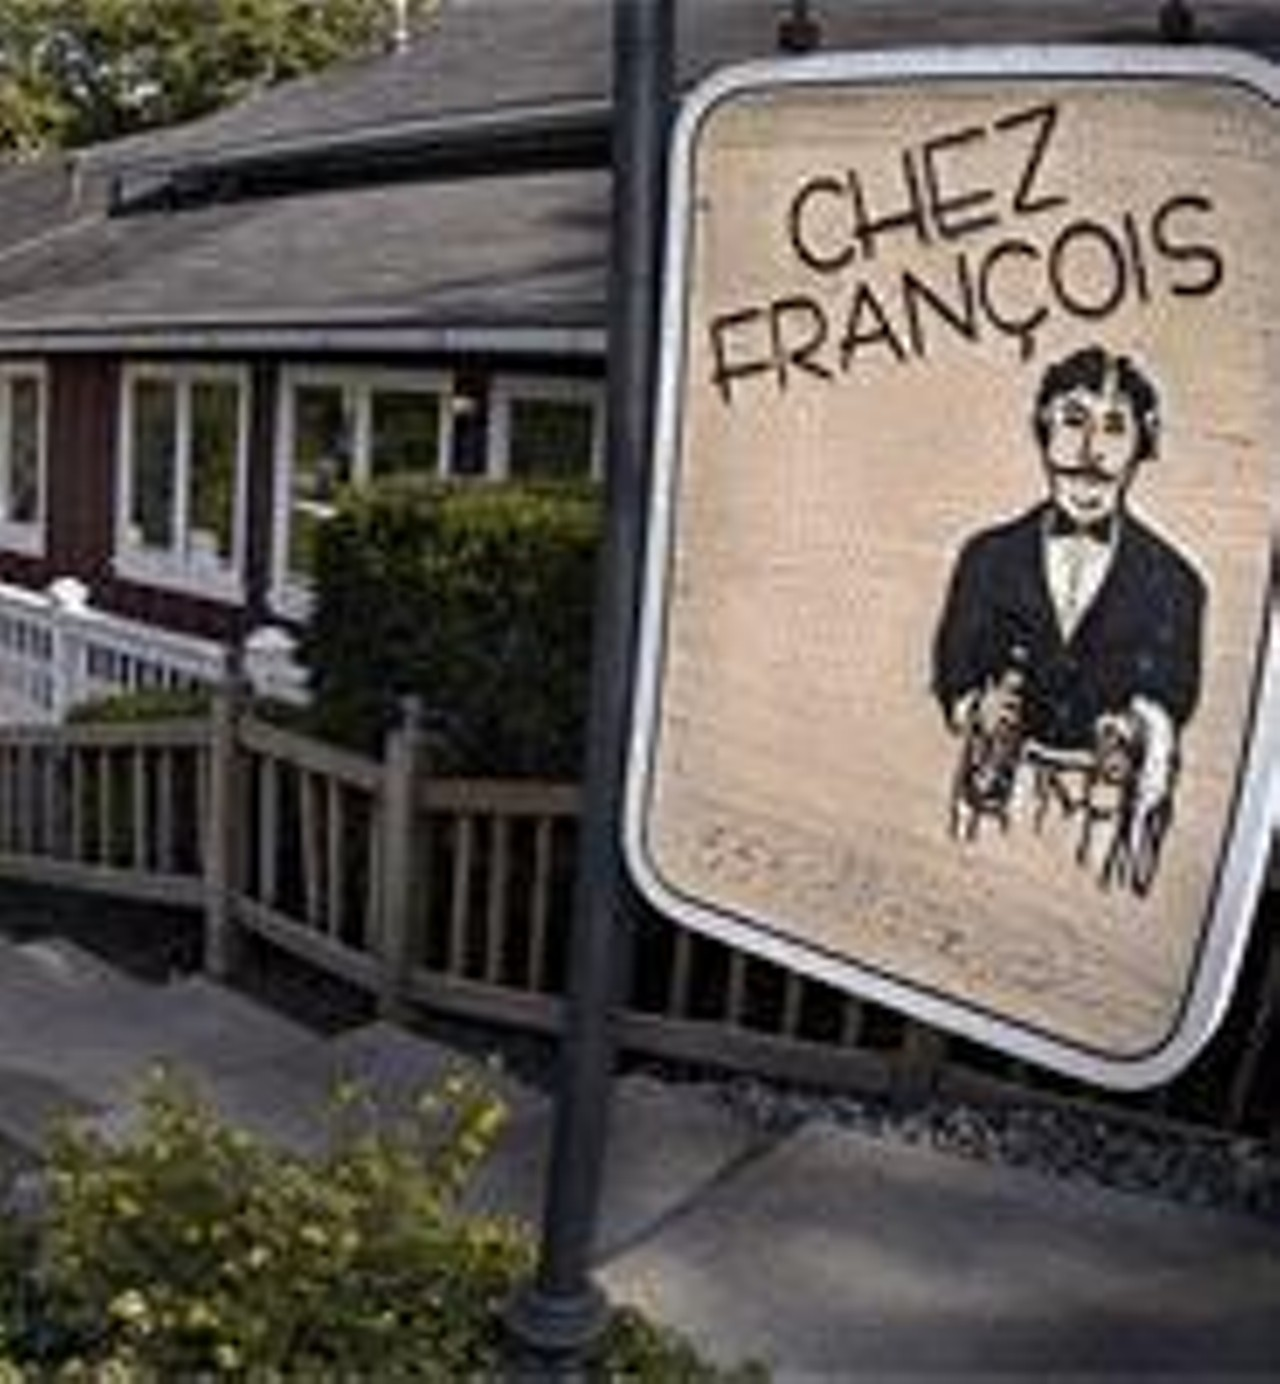 Drink In The Season Arts Features Cleveland Scene Huzaah You Now Have A Backyard With Super Cool Party Vibes Chez Franois